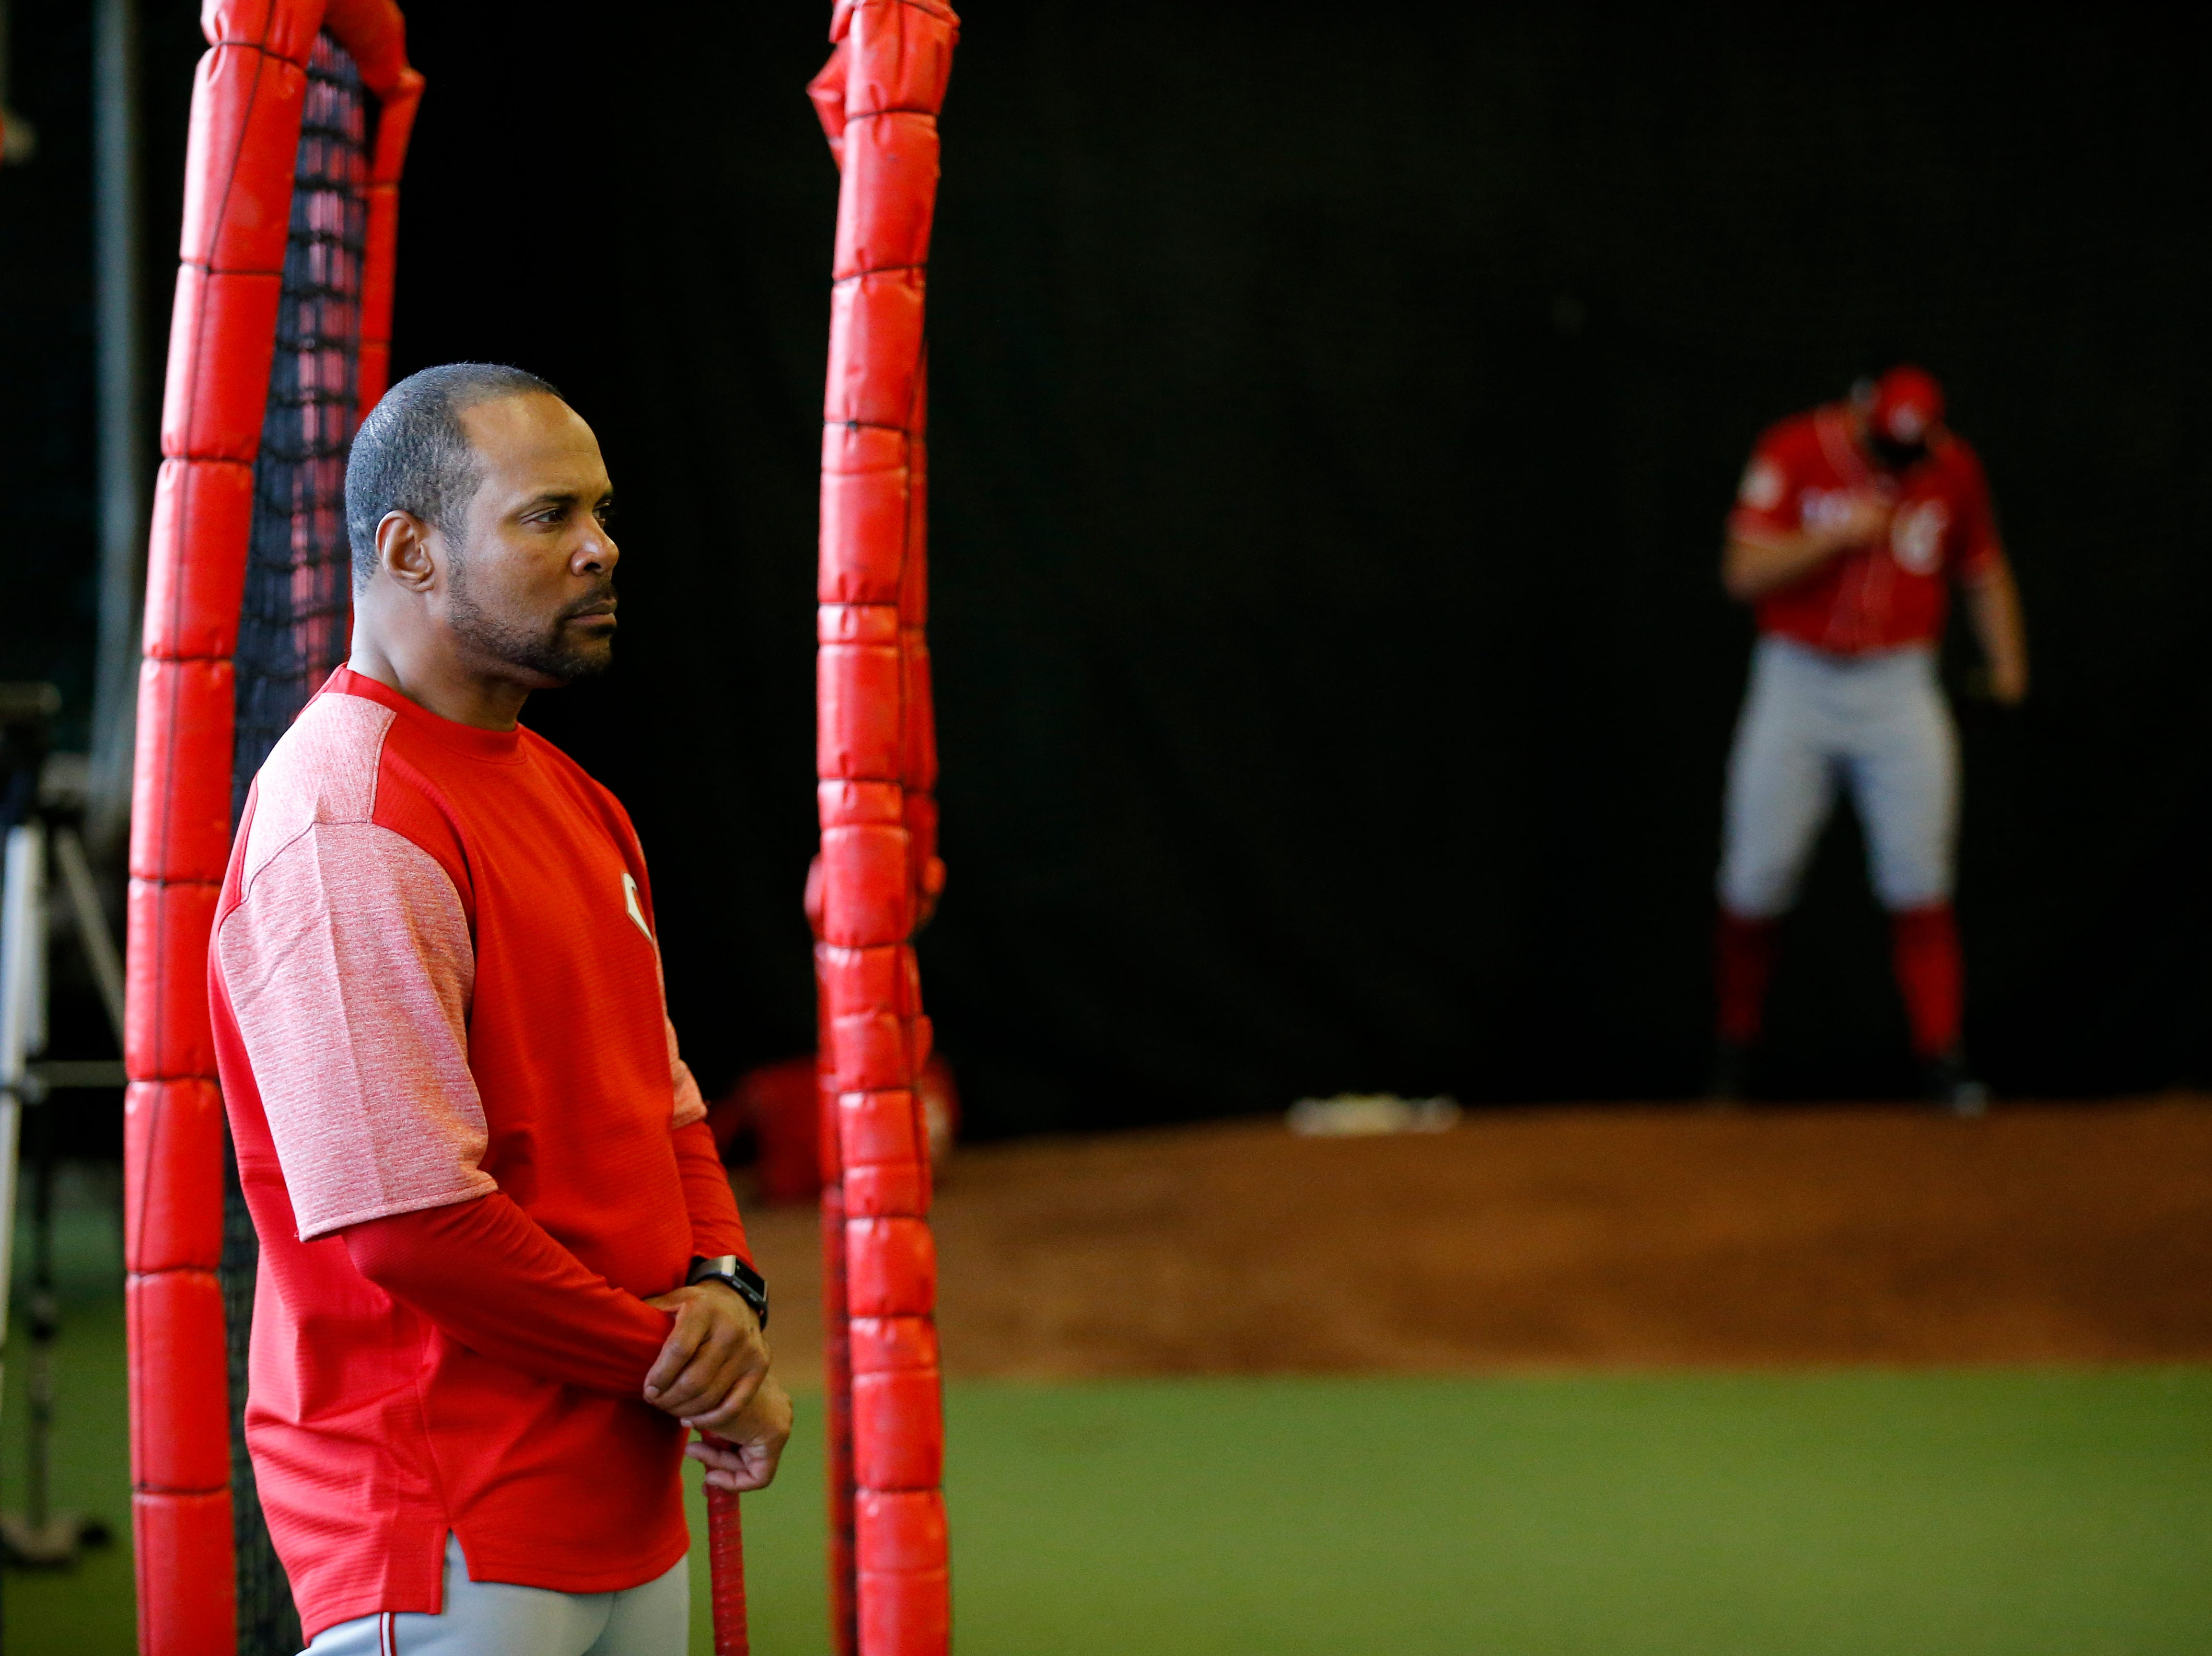 Barry Larkin watches pitching drills at the Cincinnati Reds spring training facility in Goodyear, Ariz., on Thursday, Feb. 21, 2019.